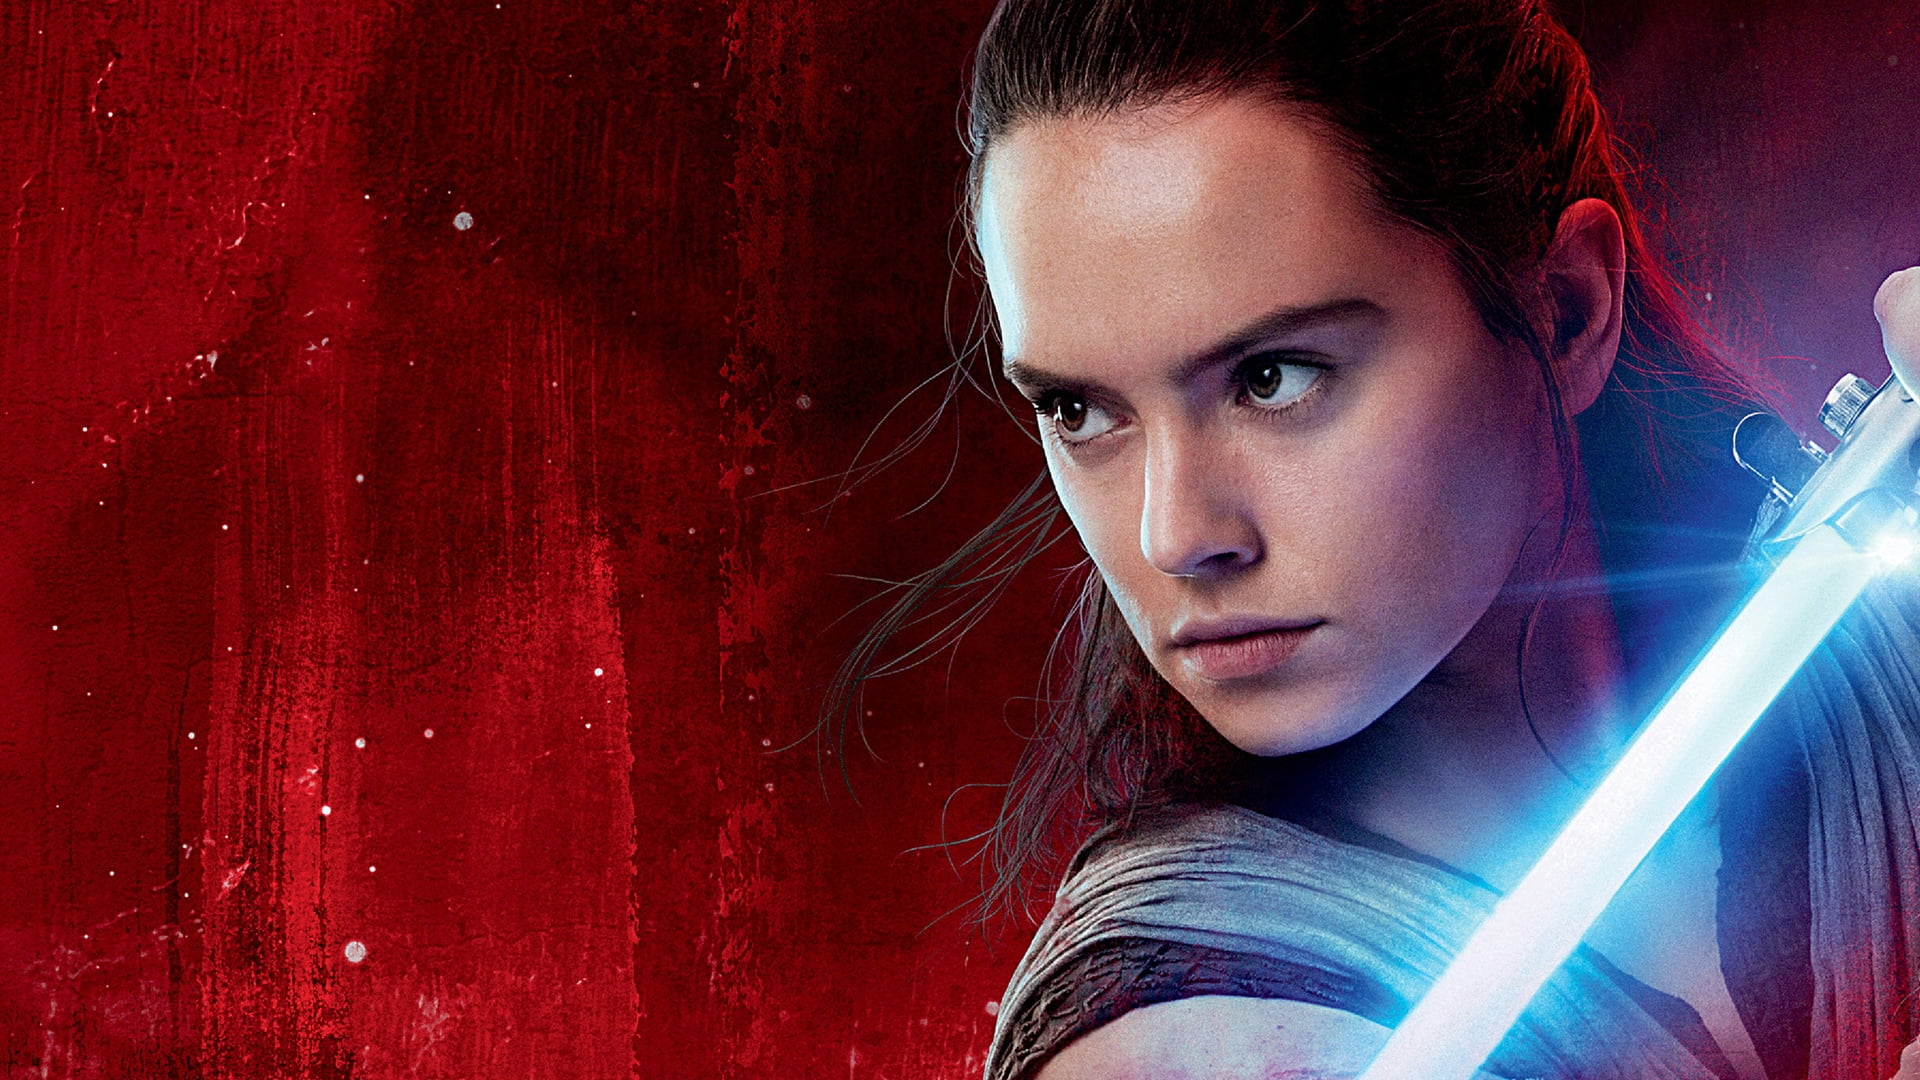 Last Jedi Wallpaper 1920x1080 Posted By Samantha Tremblay